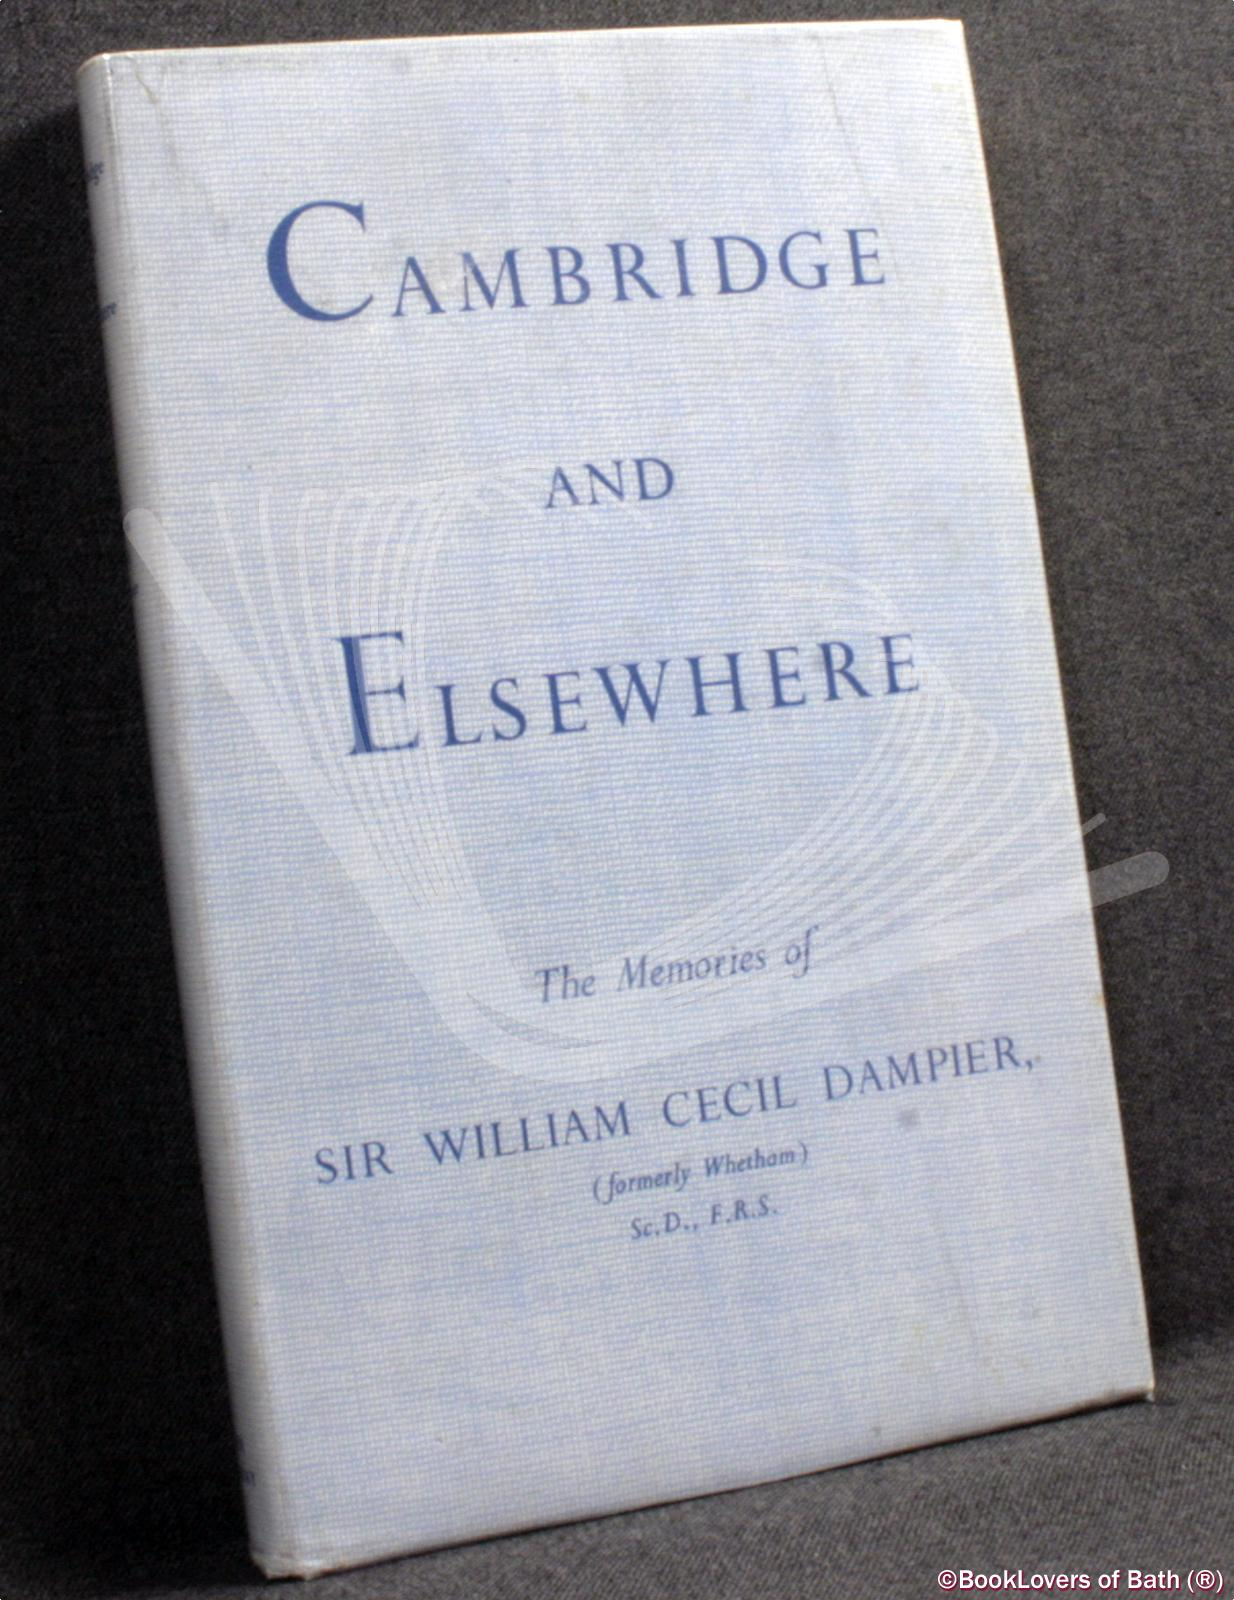 Cambridge and Elsewhere: The Memories of Sir William Cecil Dampier, Formerly Whetham - William Cecil Dampier